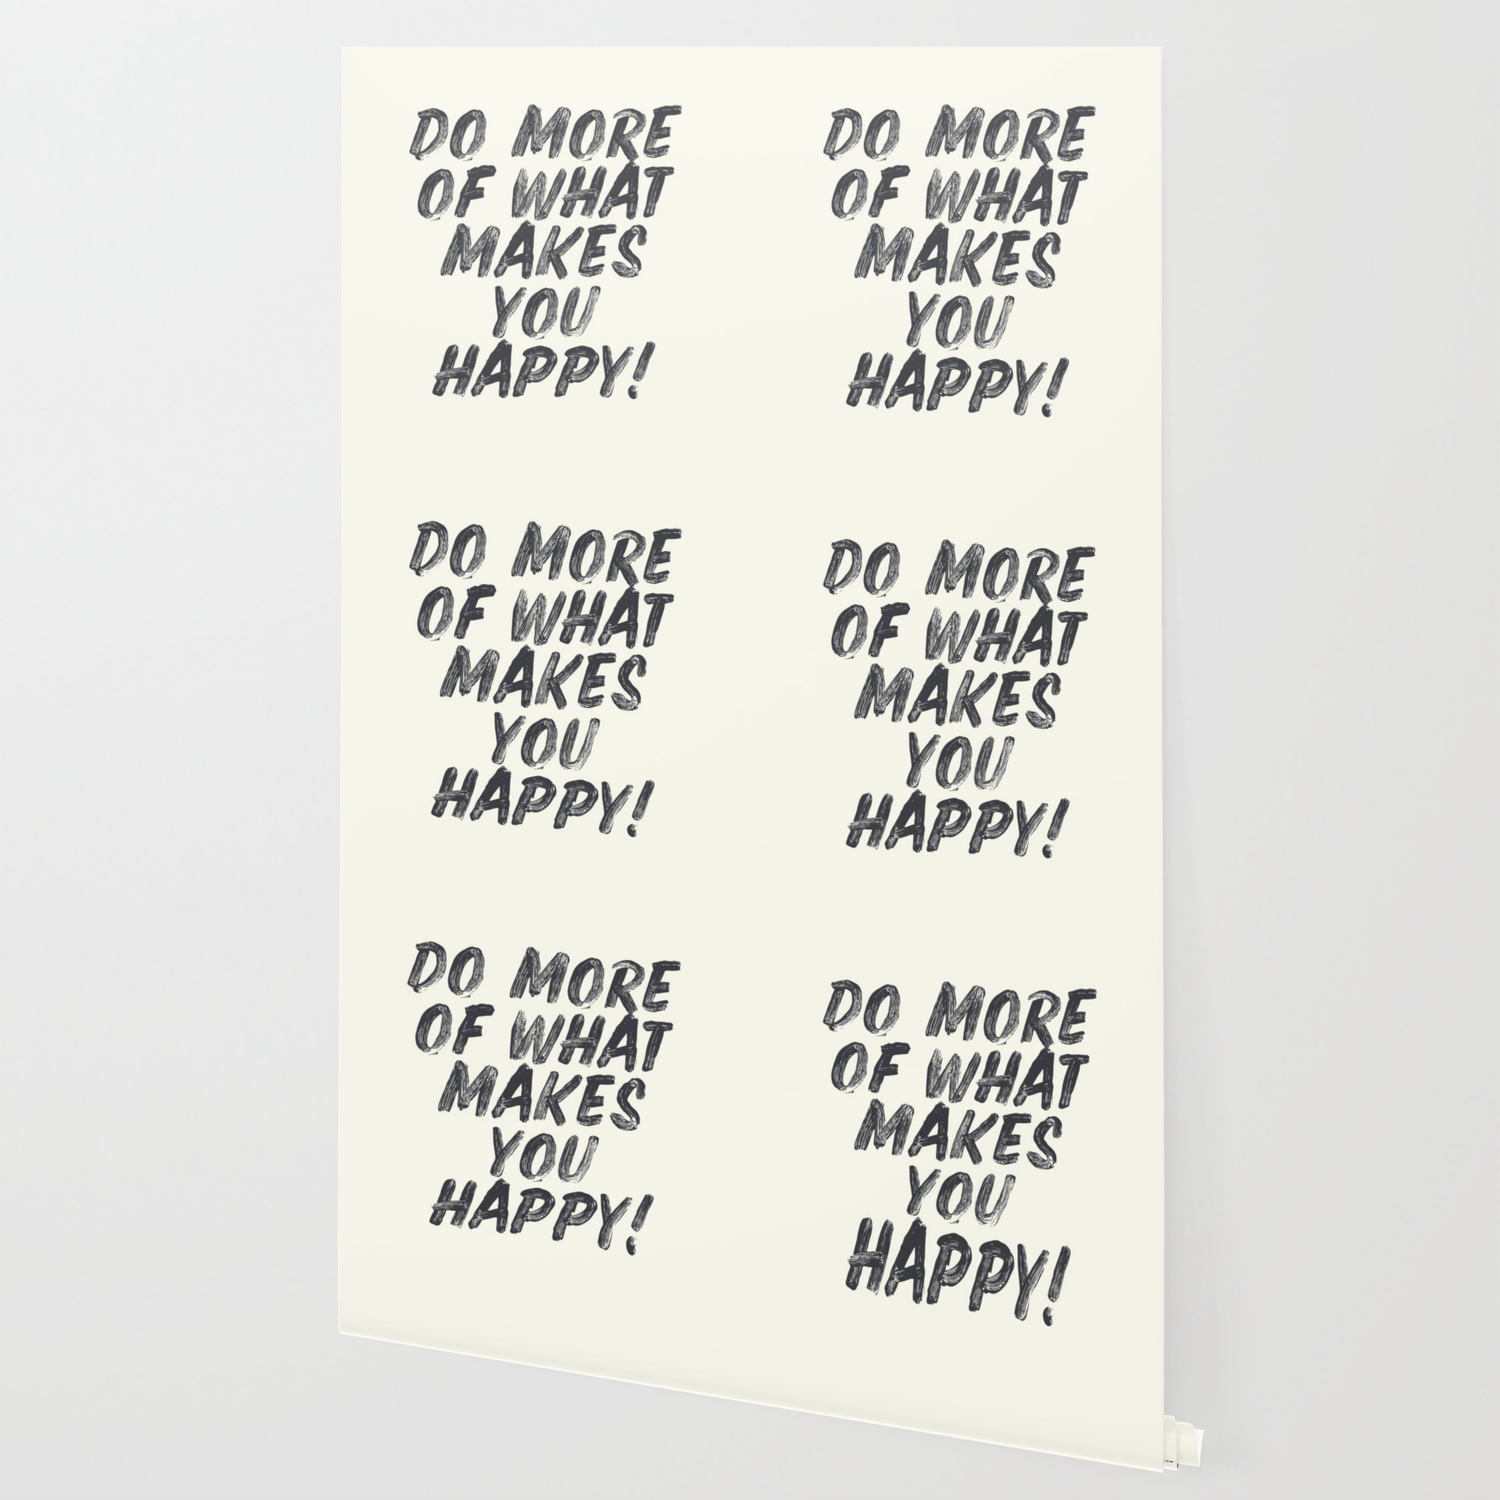 Do More Of What Makes You Happy Handwritten Positive Vibes Inspirational Motivational Quote Wallpaper By Stefanoreves Society6